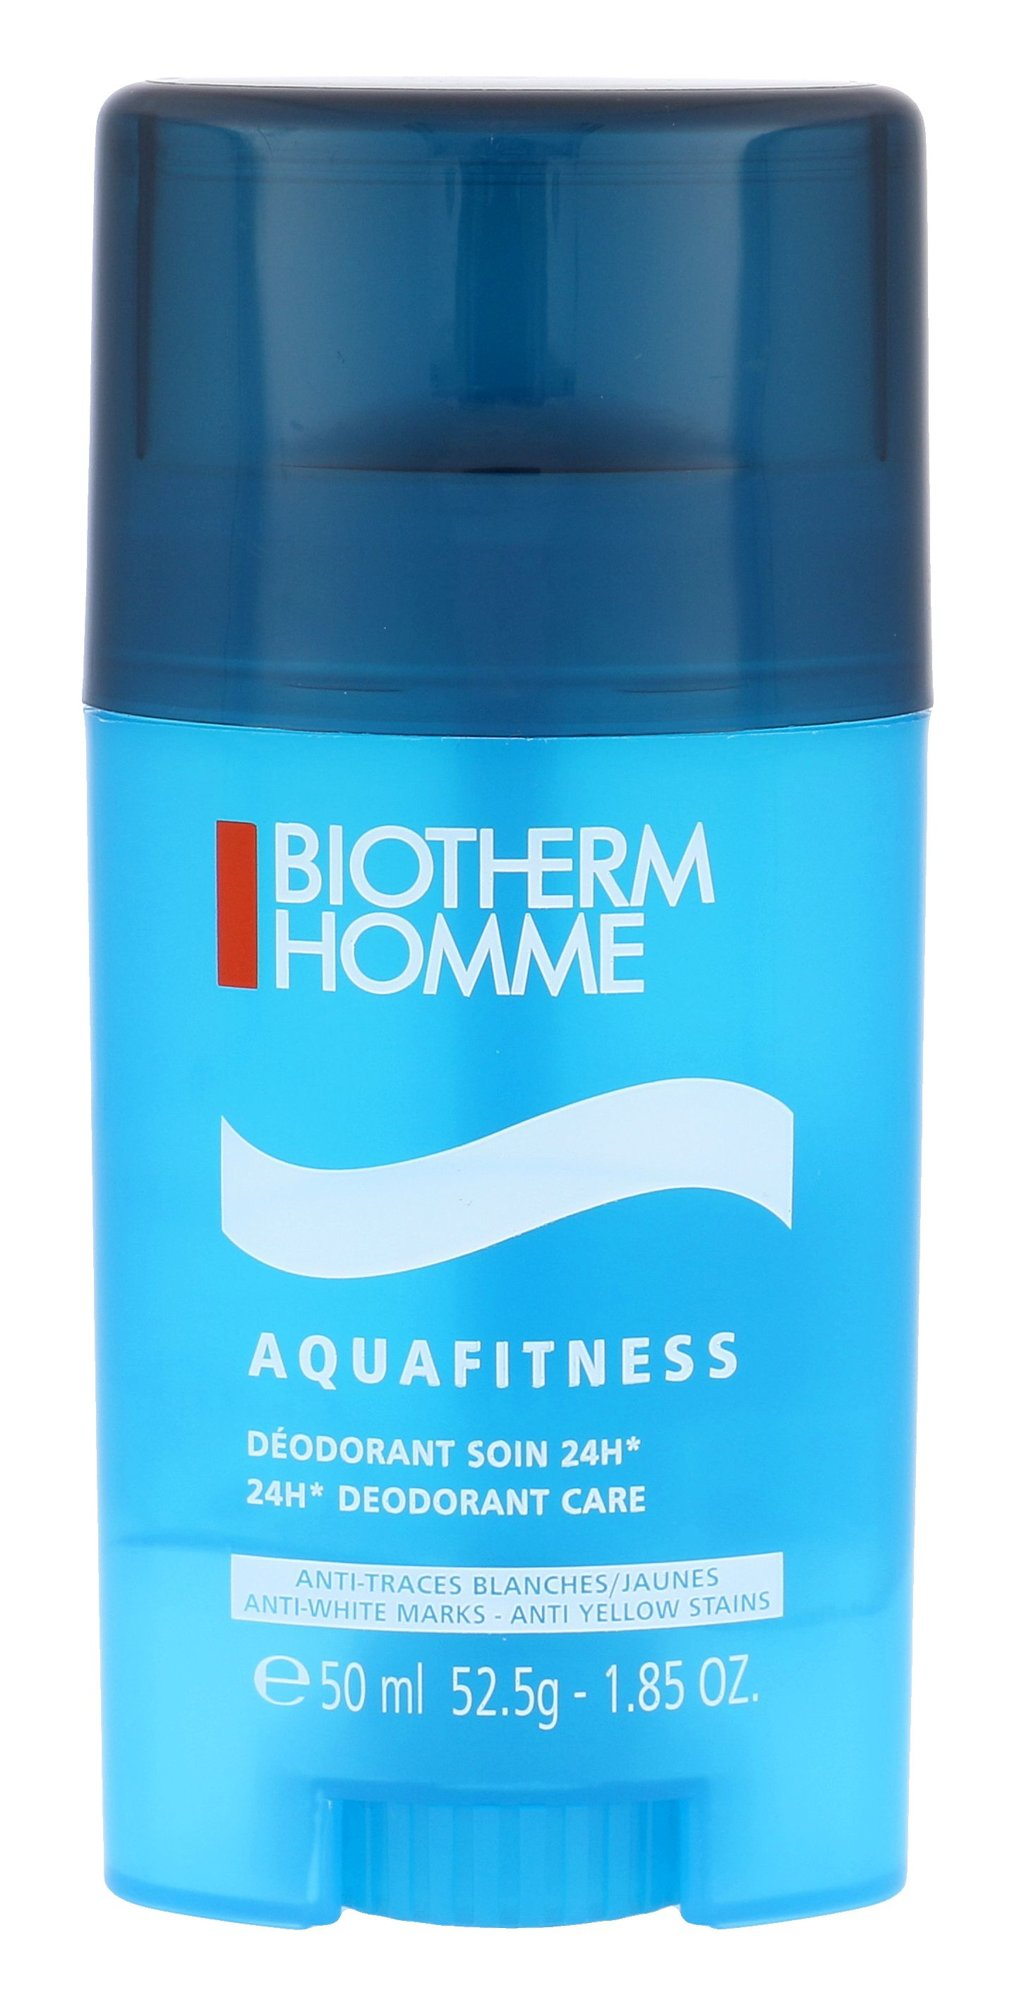 Biotherm Homme Aquafitness Cosmetic 50ml  24H